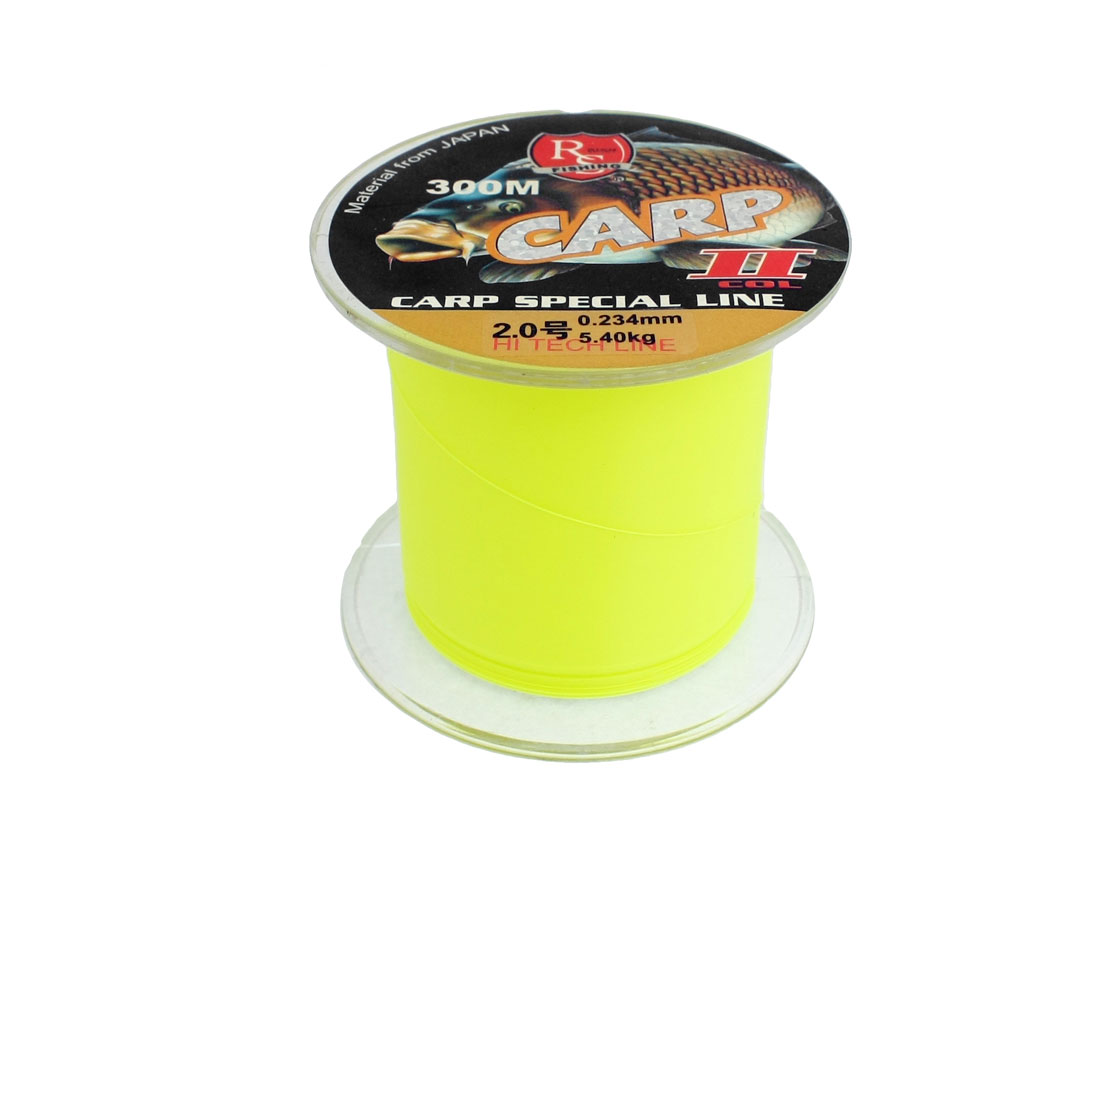 0.234mm Diameter 5.4Kg Yellow Green Nylon Freshwater Fishing Spool Line 300m